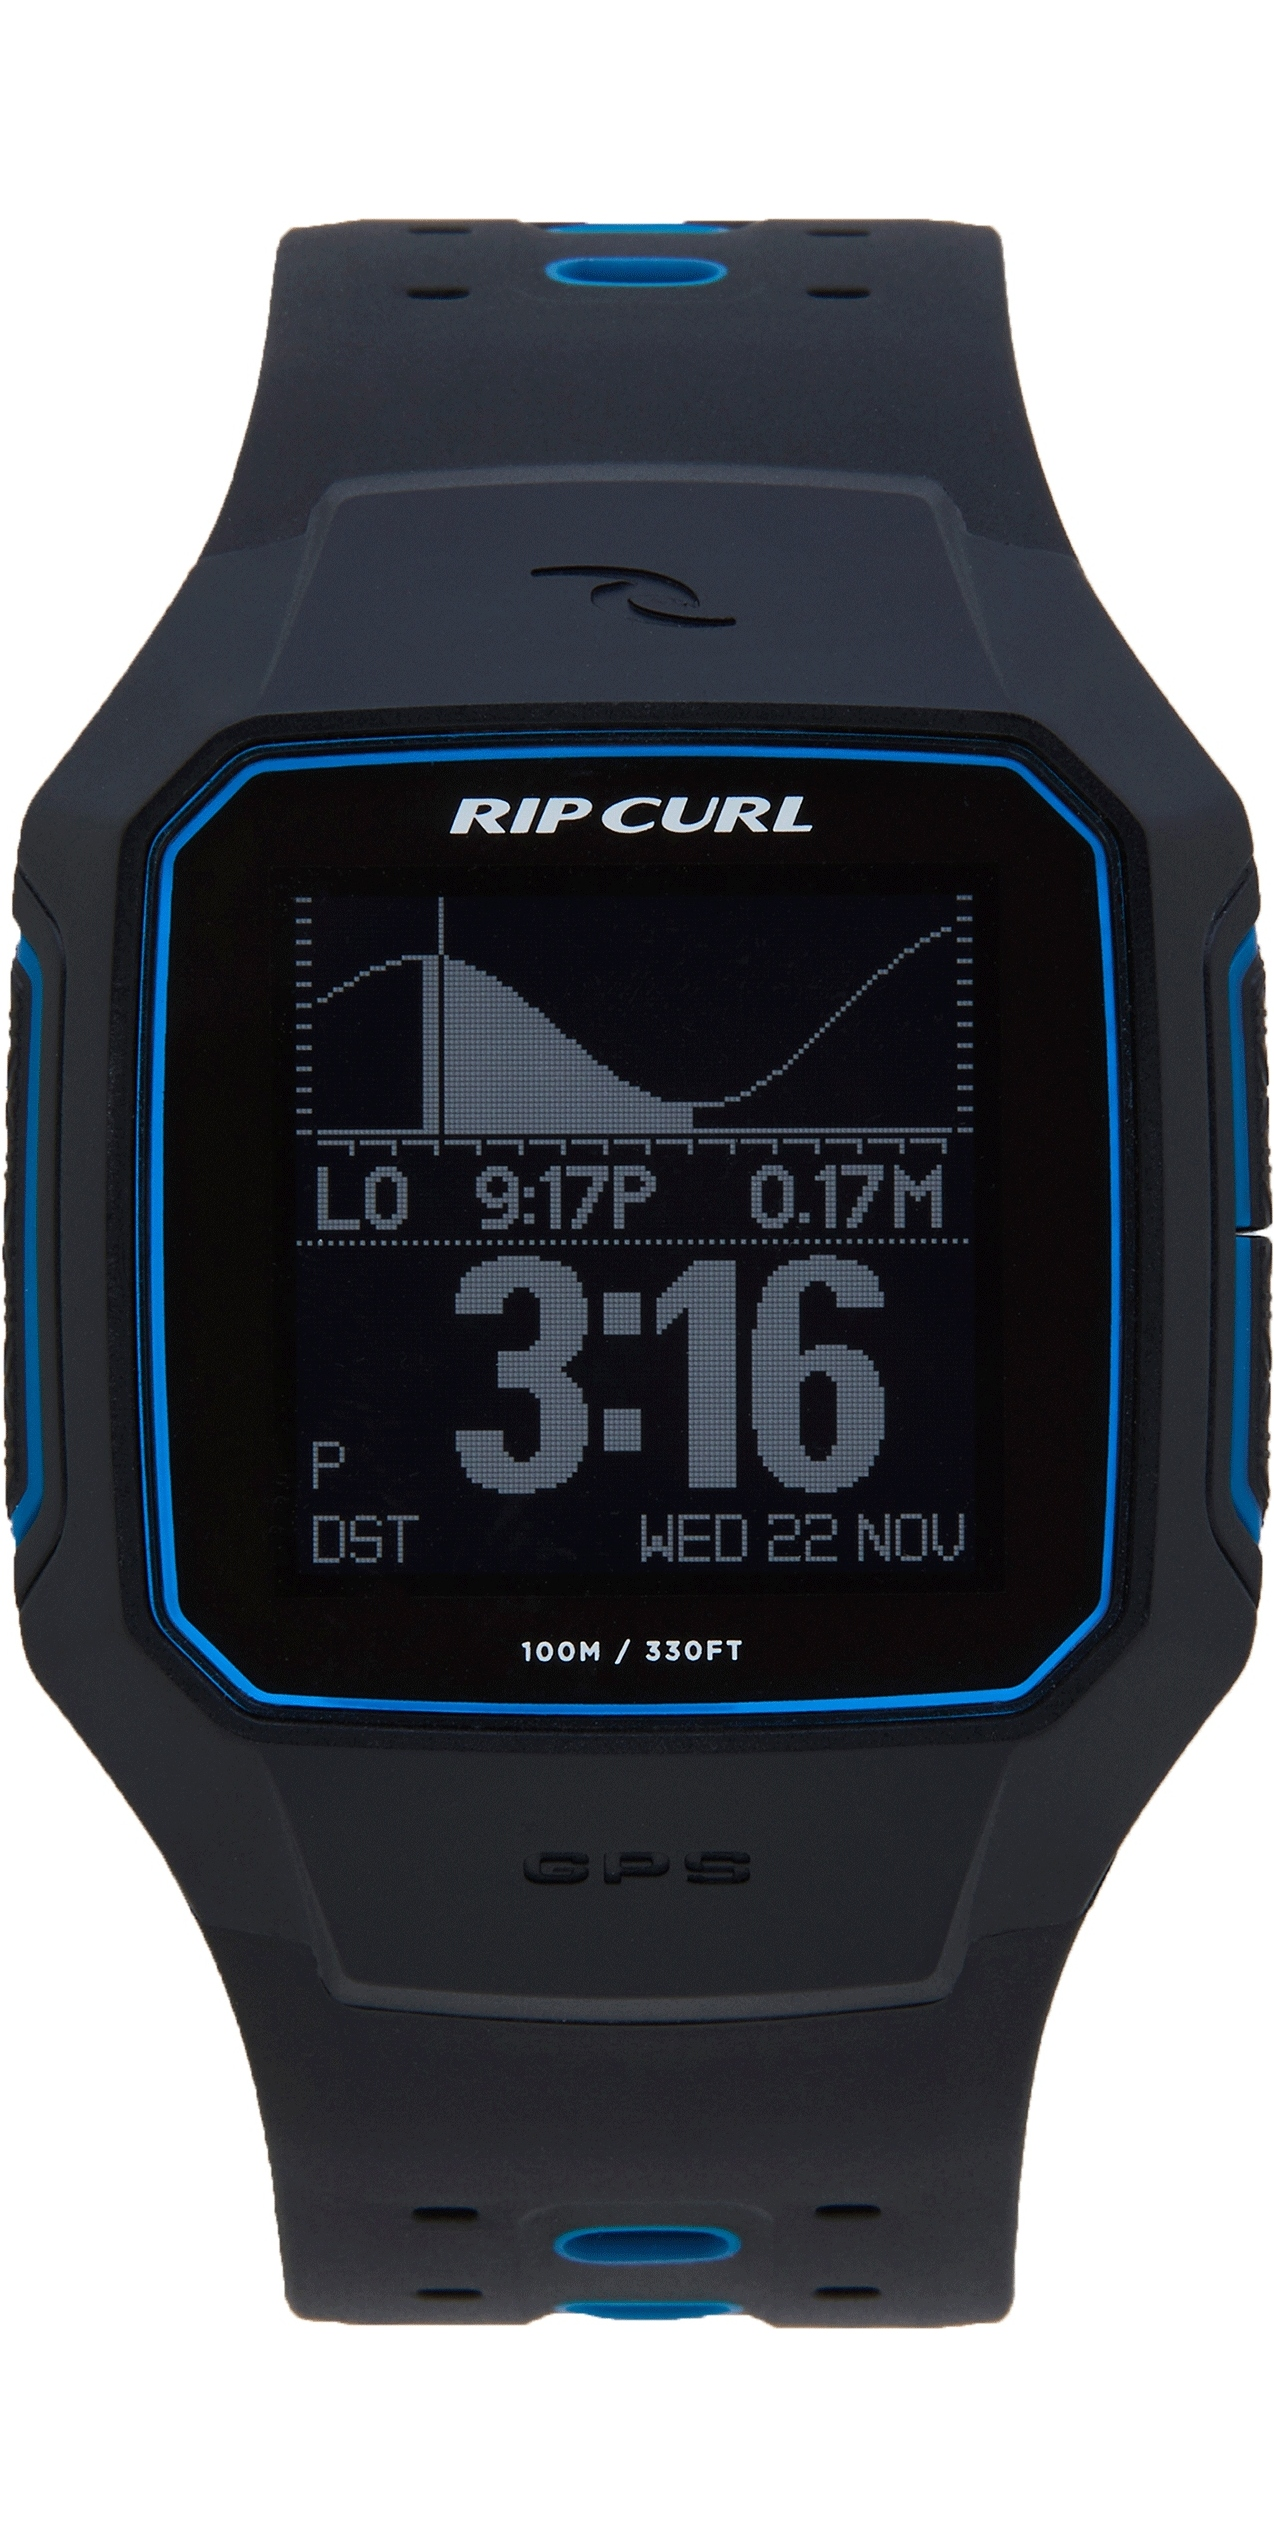 2019 Rip Curl Search Gps Series 2 Reloj Inteligente De Surf Azul A1144